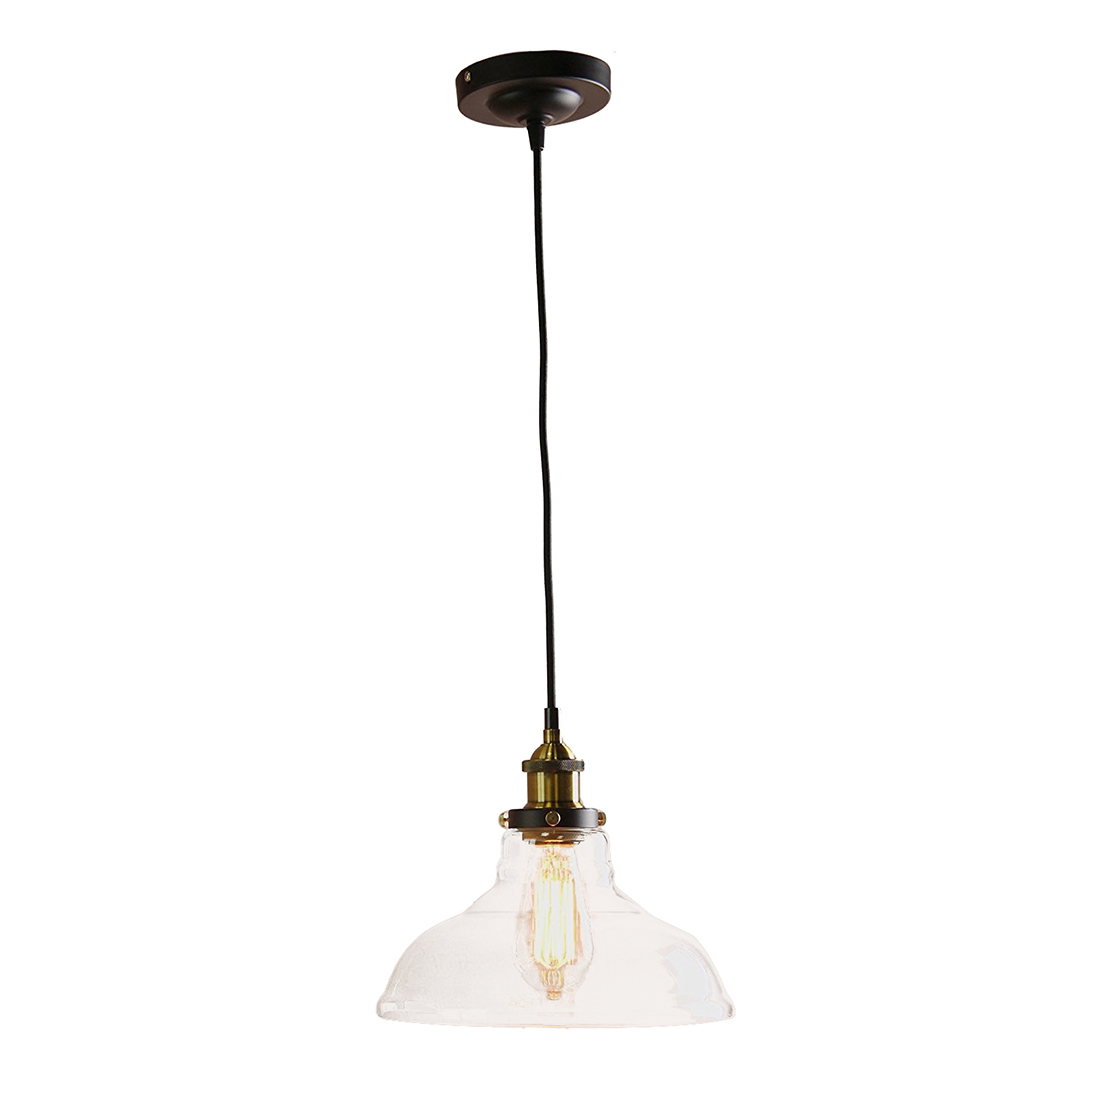 Modern Vintage Industrial 1 Light Iron Body Glass Shade Coffee Bar Kitchen cover Chandeliers Hanging Pendant Lamp Transparent